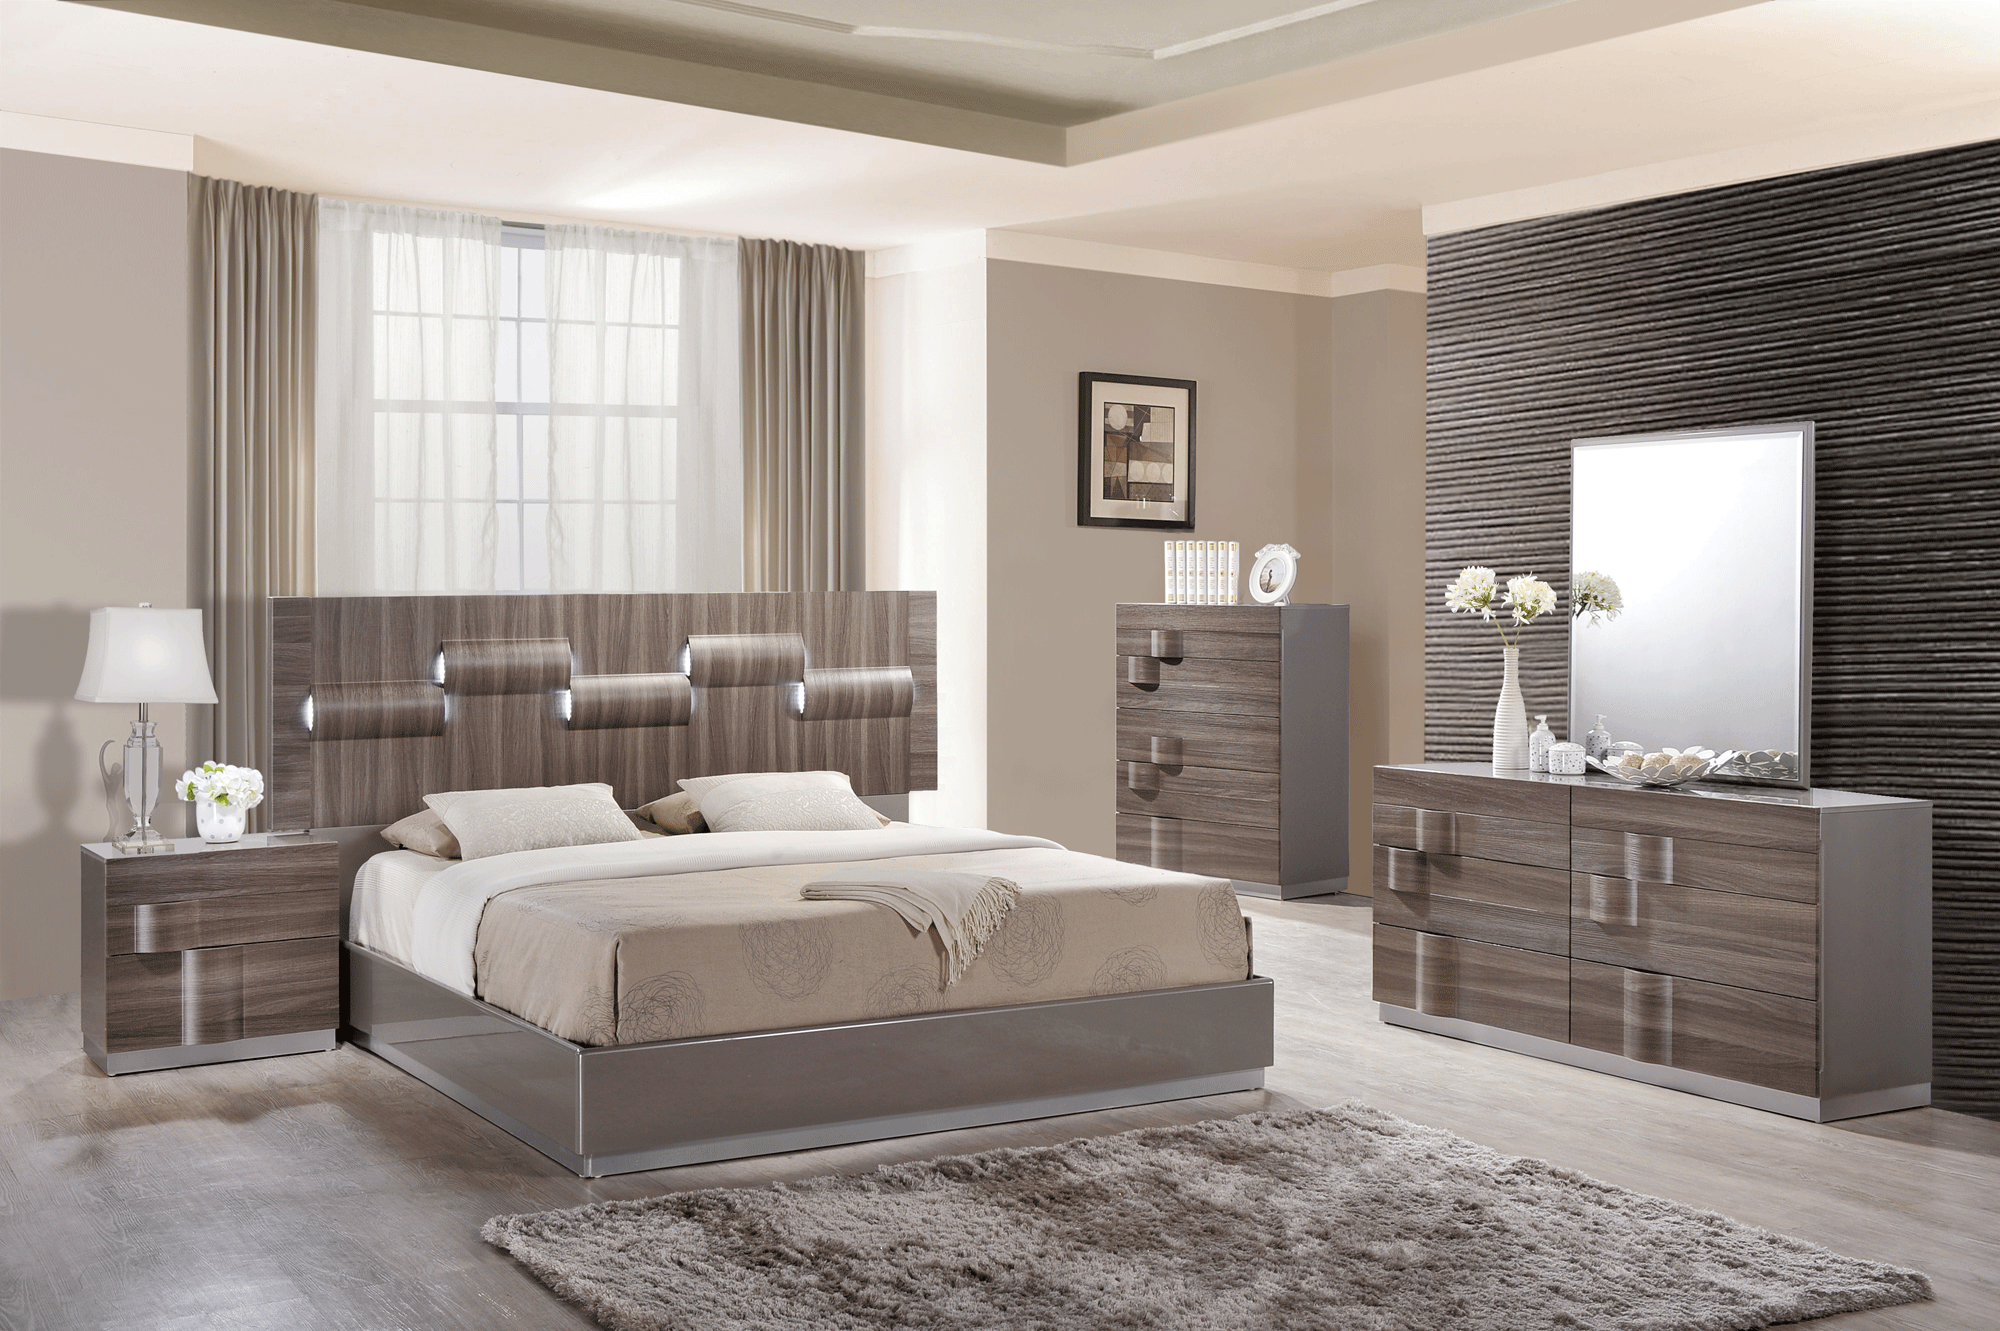 Adel Grey Glossy & Zebra Wood Bedroom Set by Global Furniture